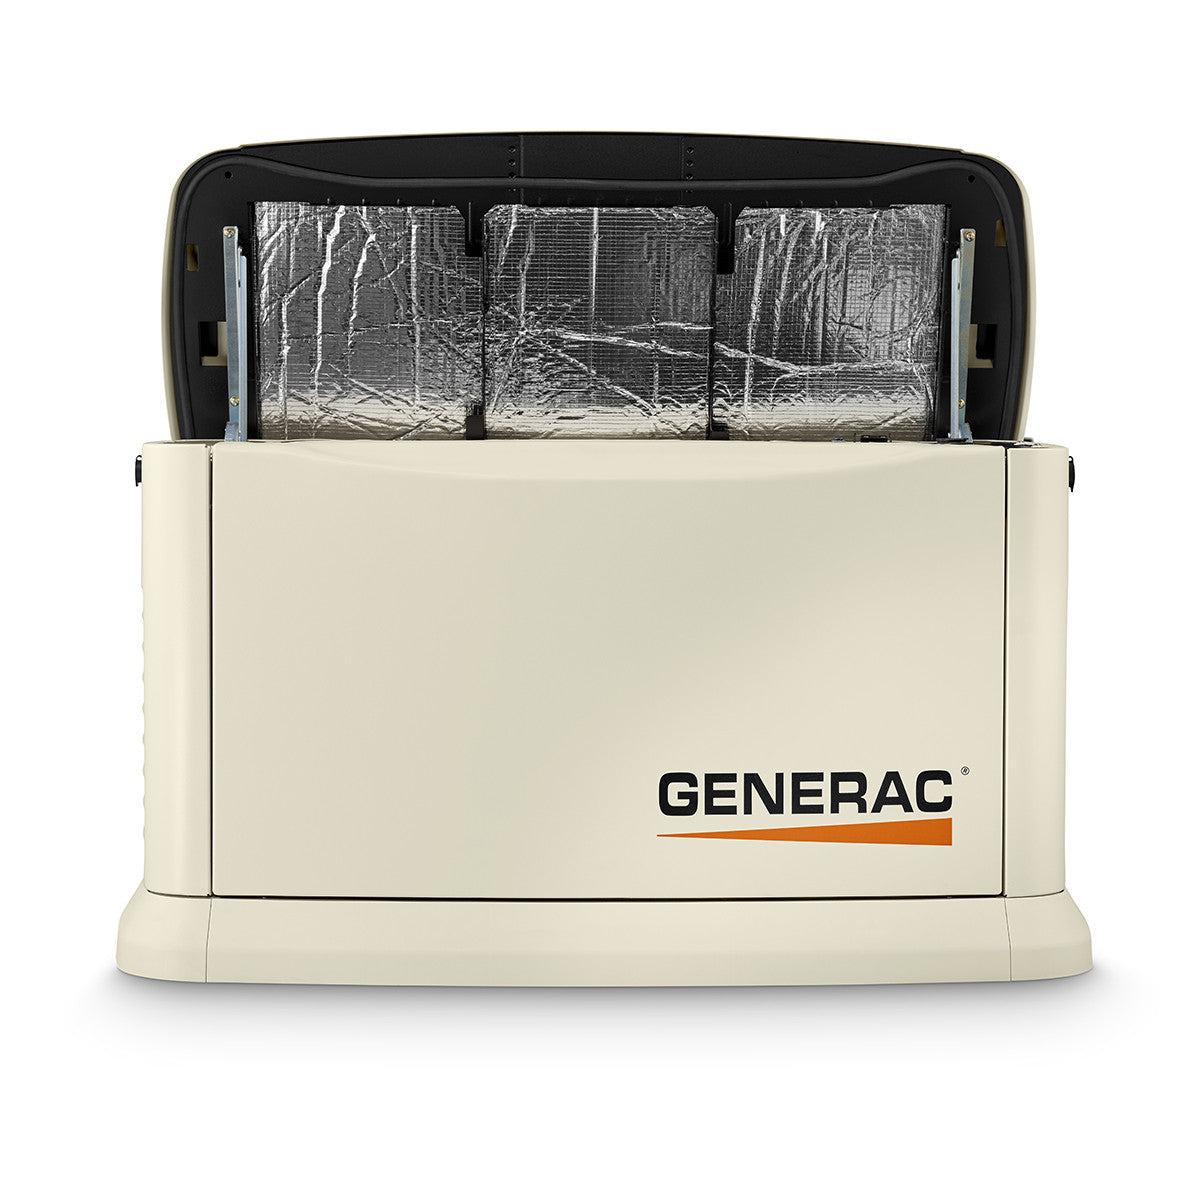 Generac Guardian 7037 16kw Aluminum Automatic Standby Generator With Wiring Diagram And Parts List For Generatorparts 200a Se Rated Transfer Switch